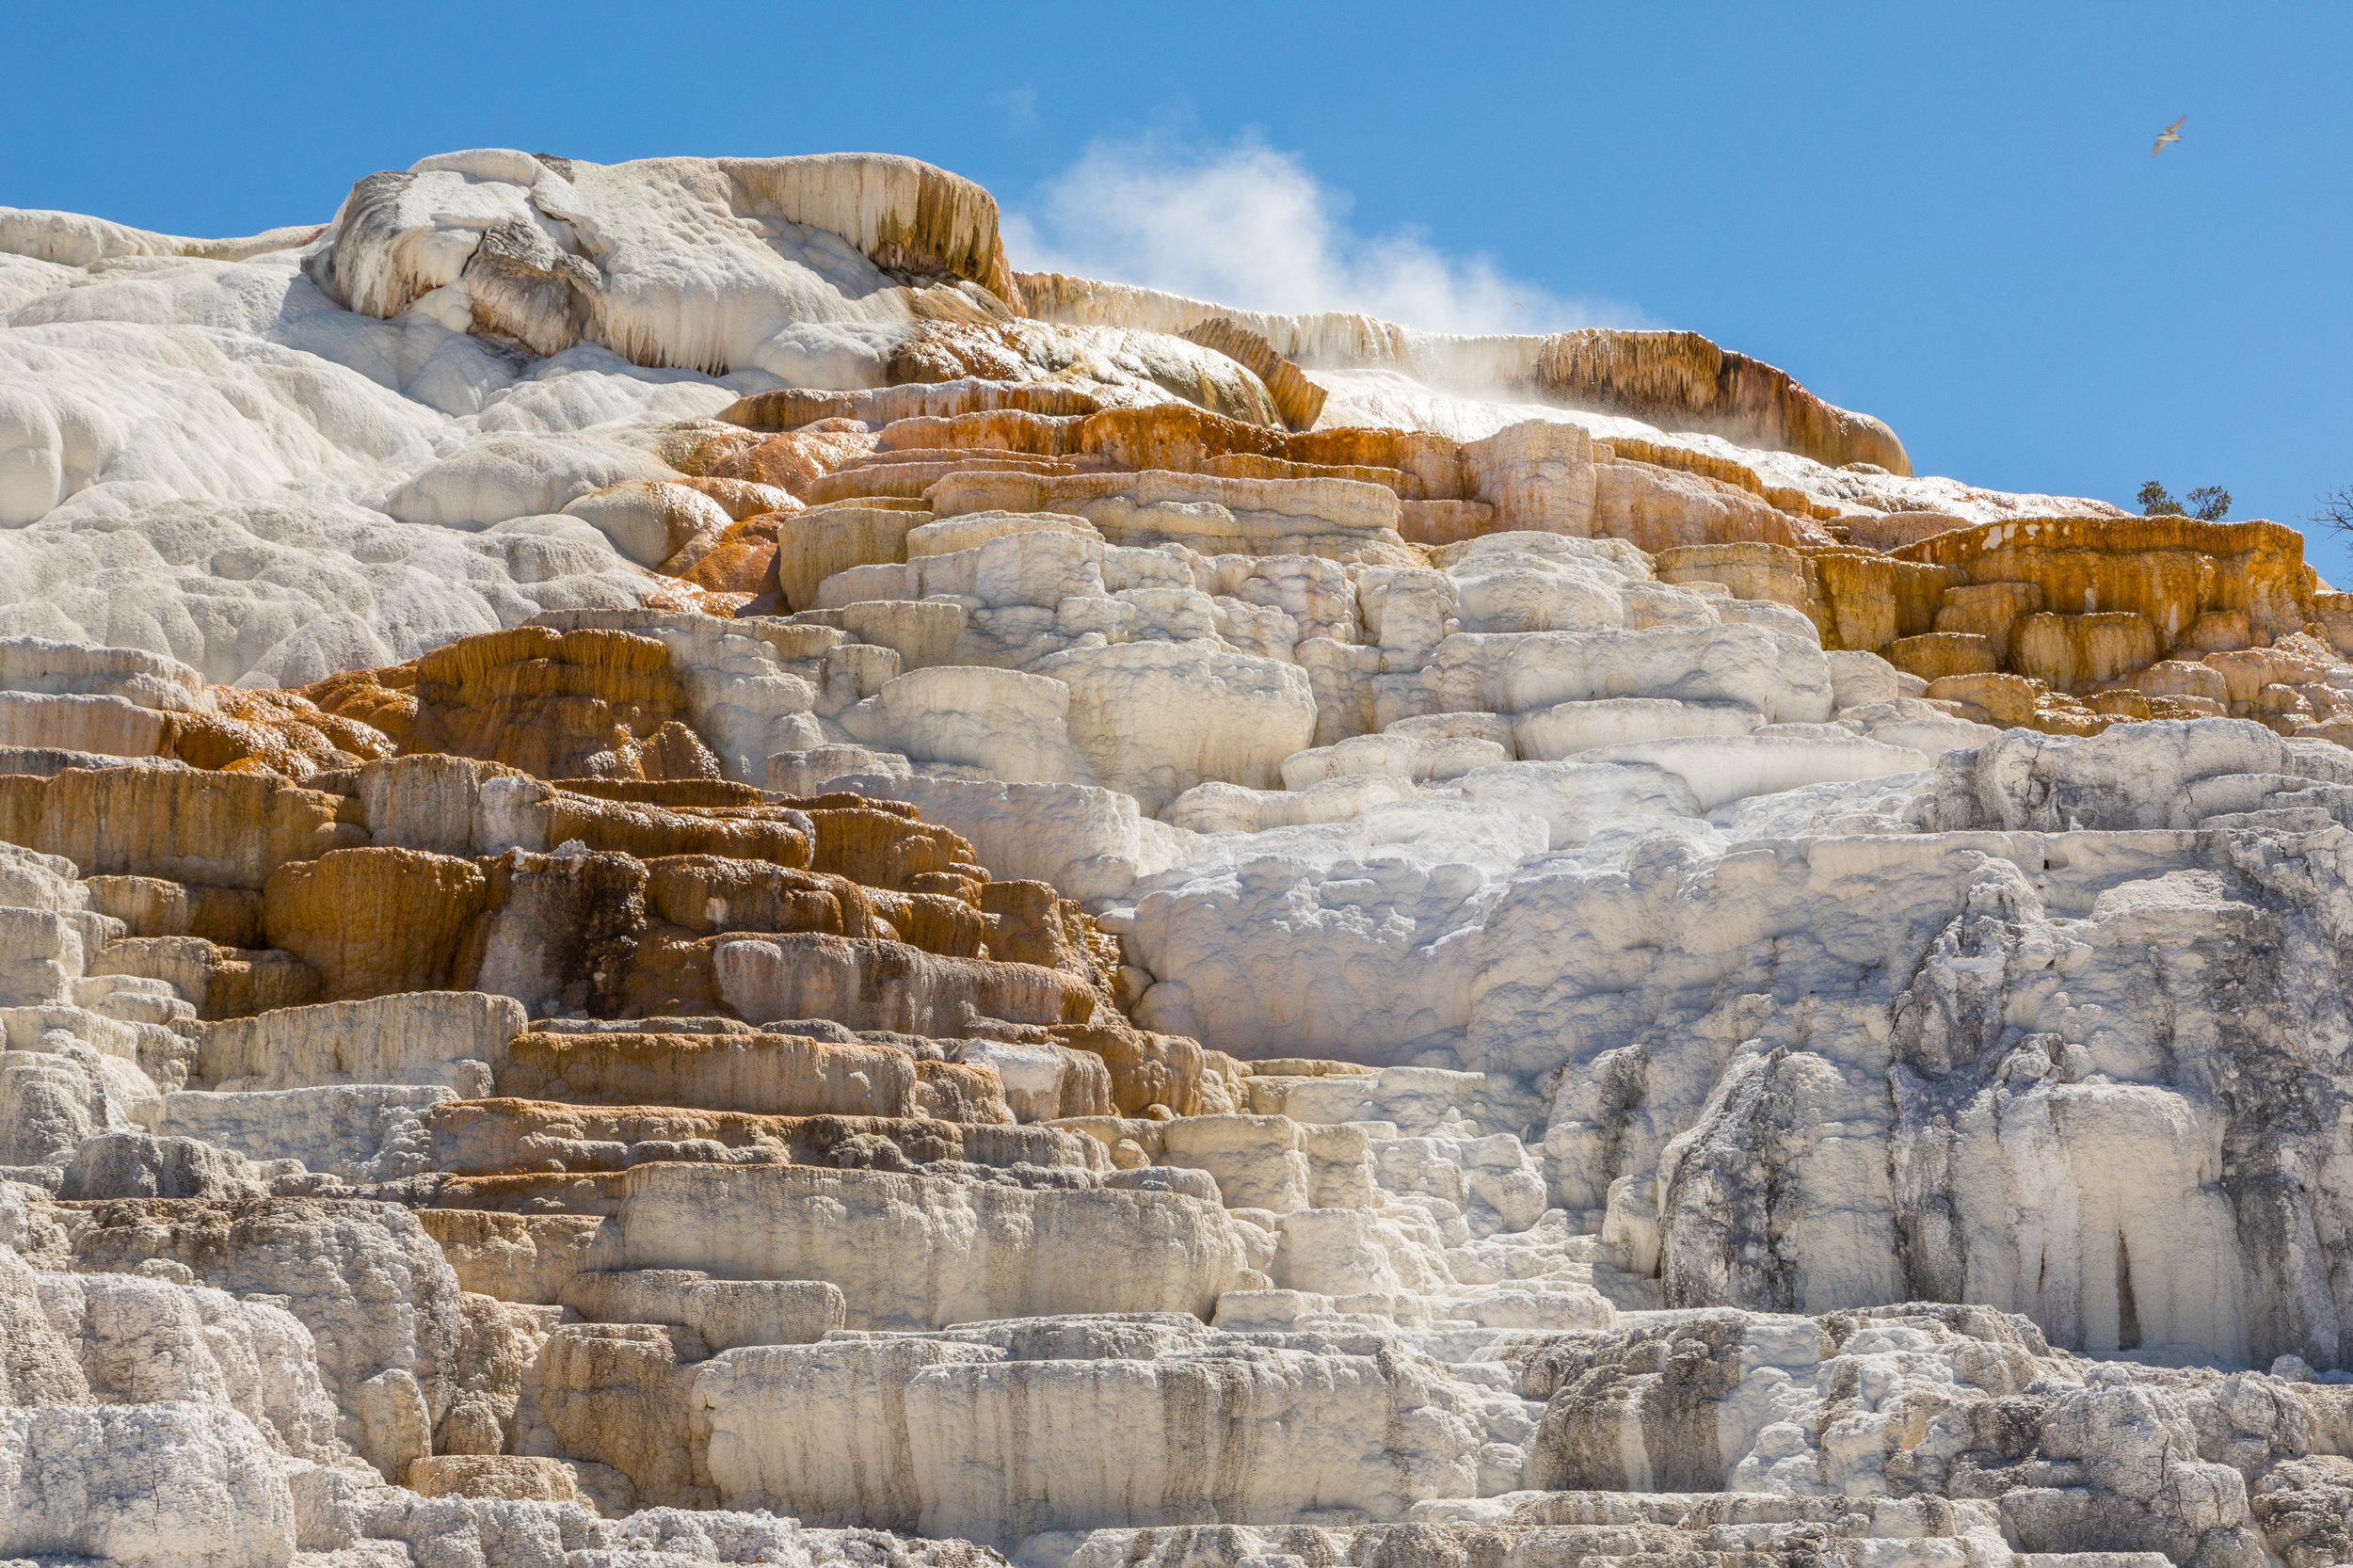 Mammoth Hot Springs, Yellowstone National Park, Image # 7556